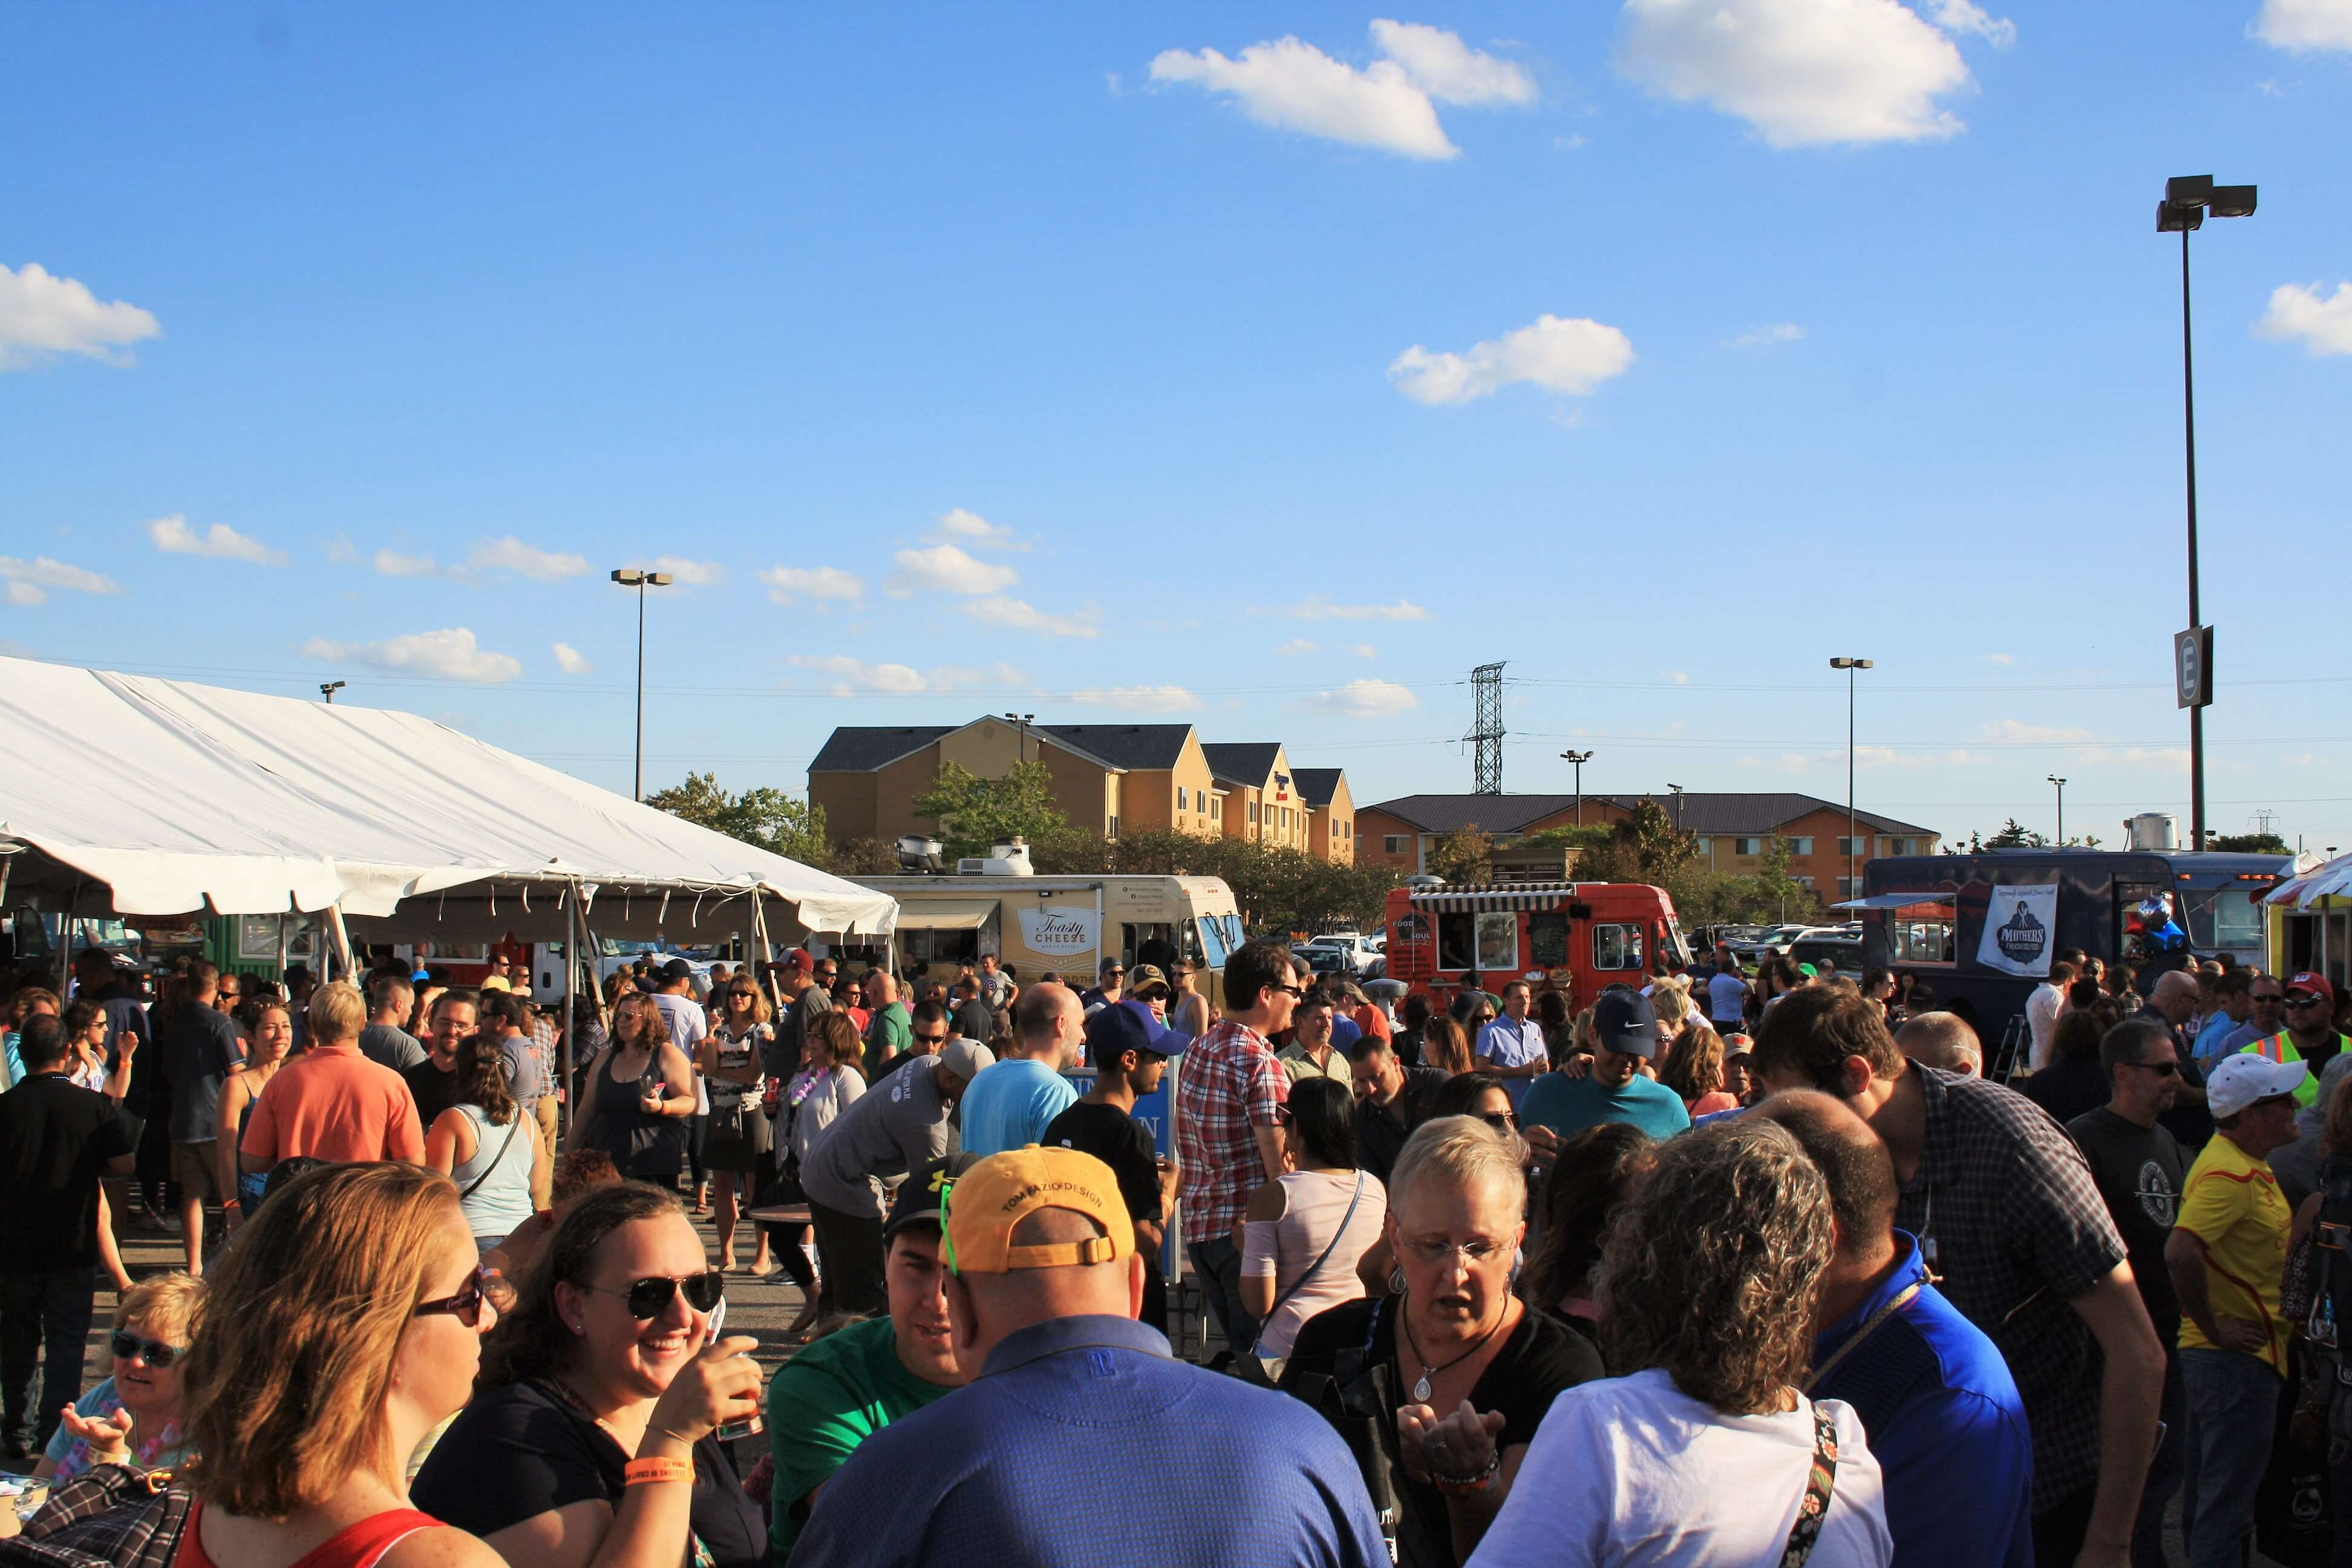 crowd-shot-2016-legions-of-craft-beer-festival